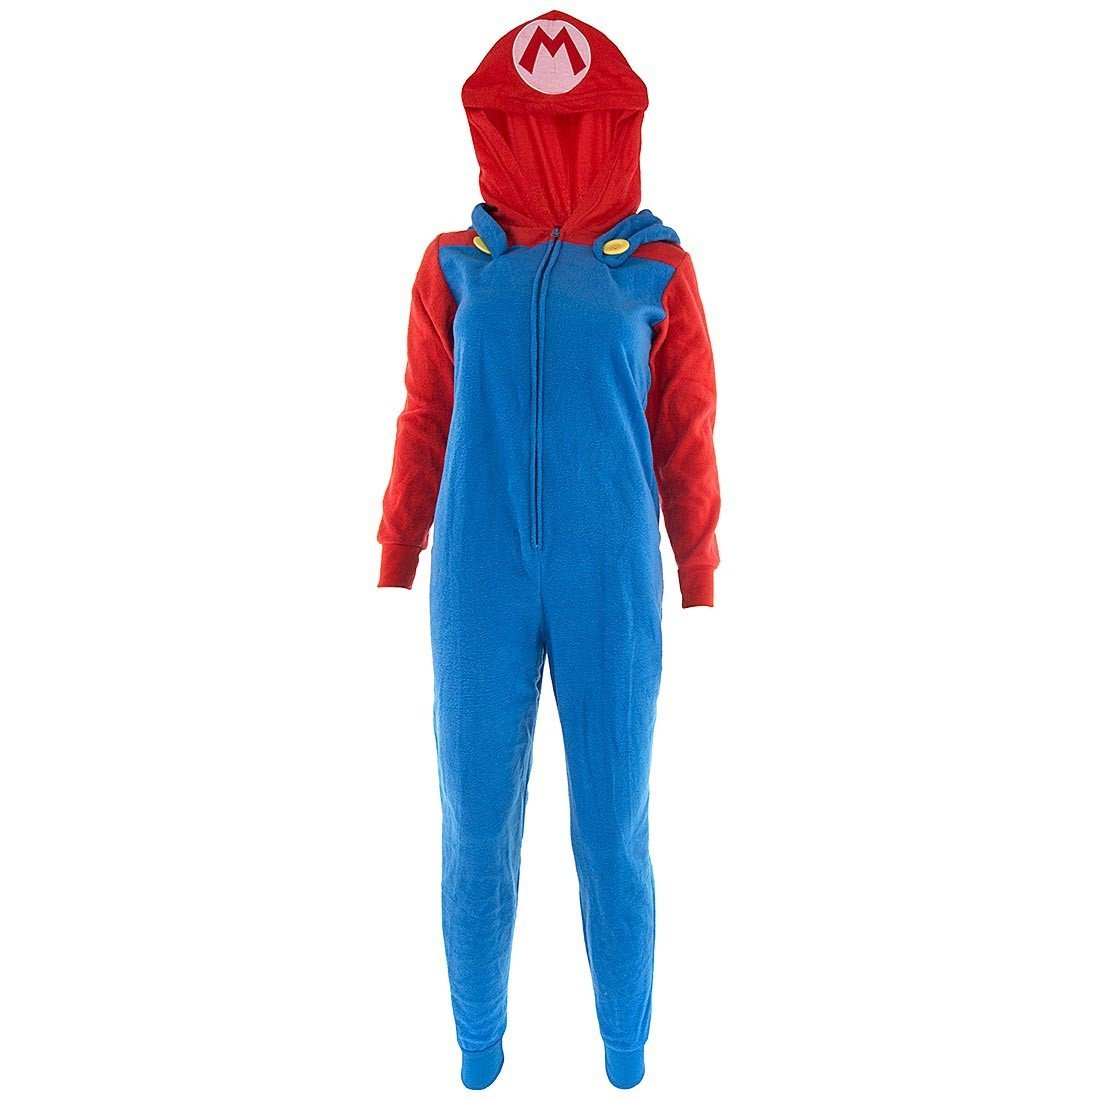 Nintendo Super Mario Onesie Pajama for men